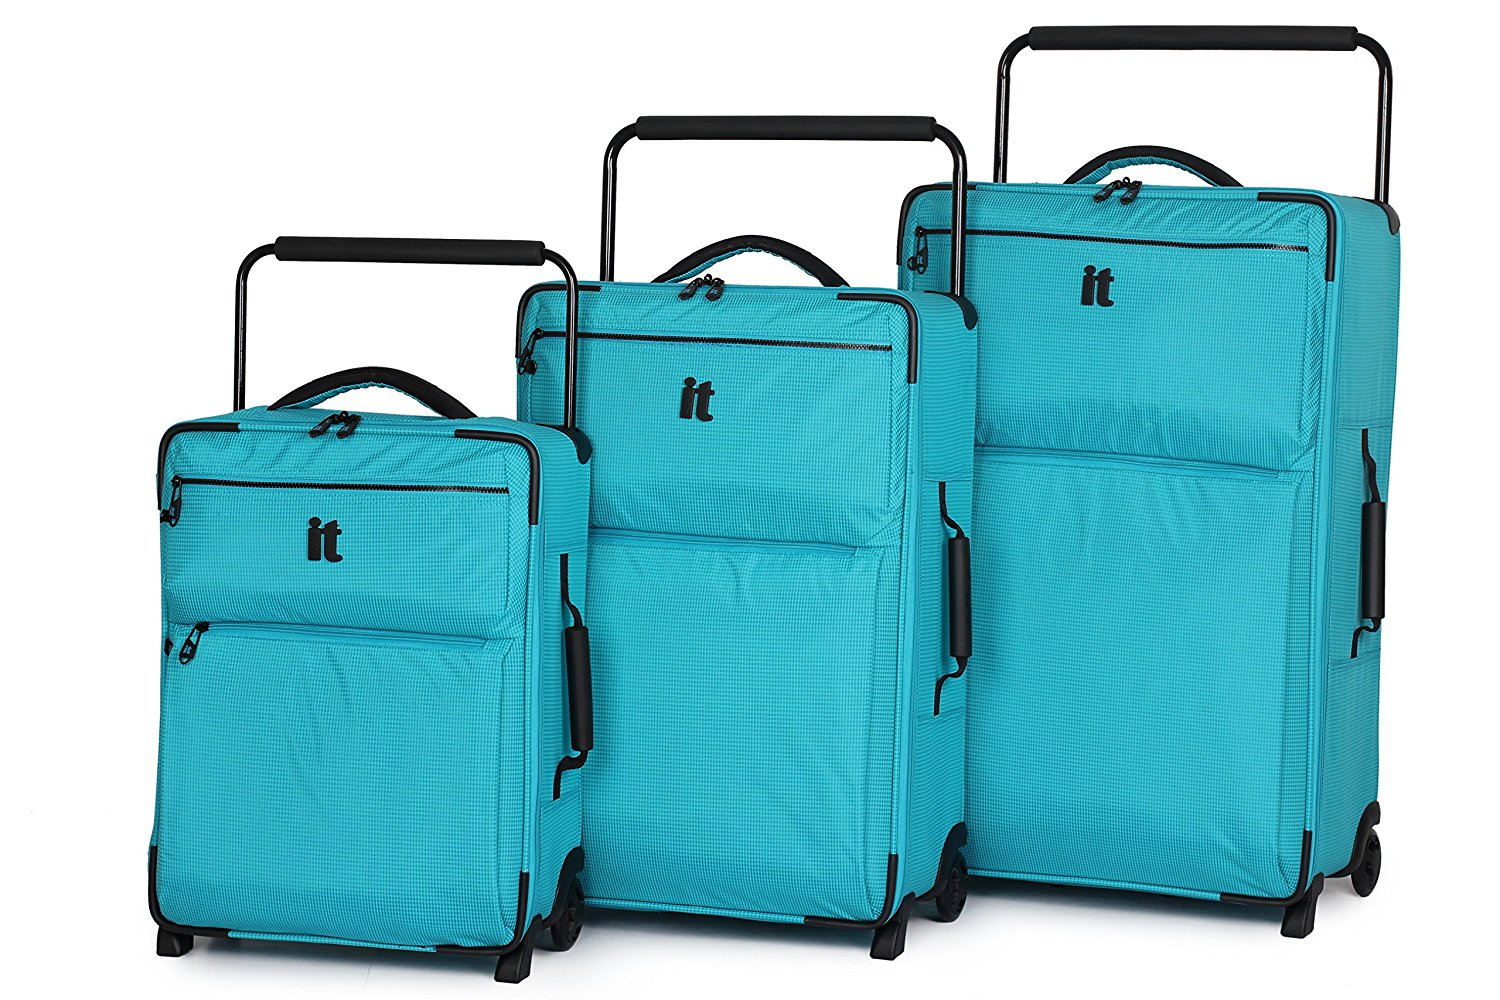 Review of the Best Travel Bag—it luggage World's Lightest Travel Bag 3 Piece Set